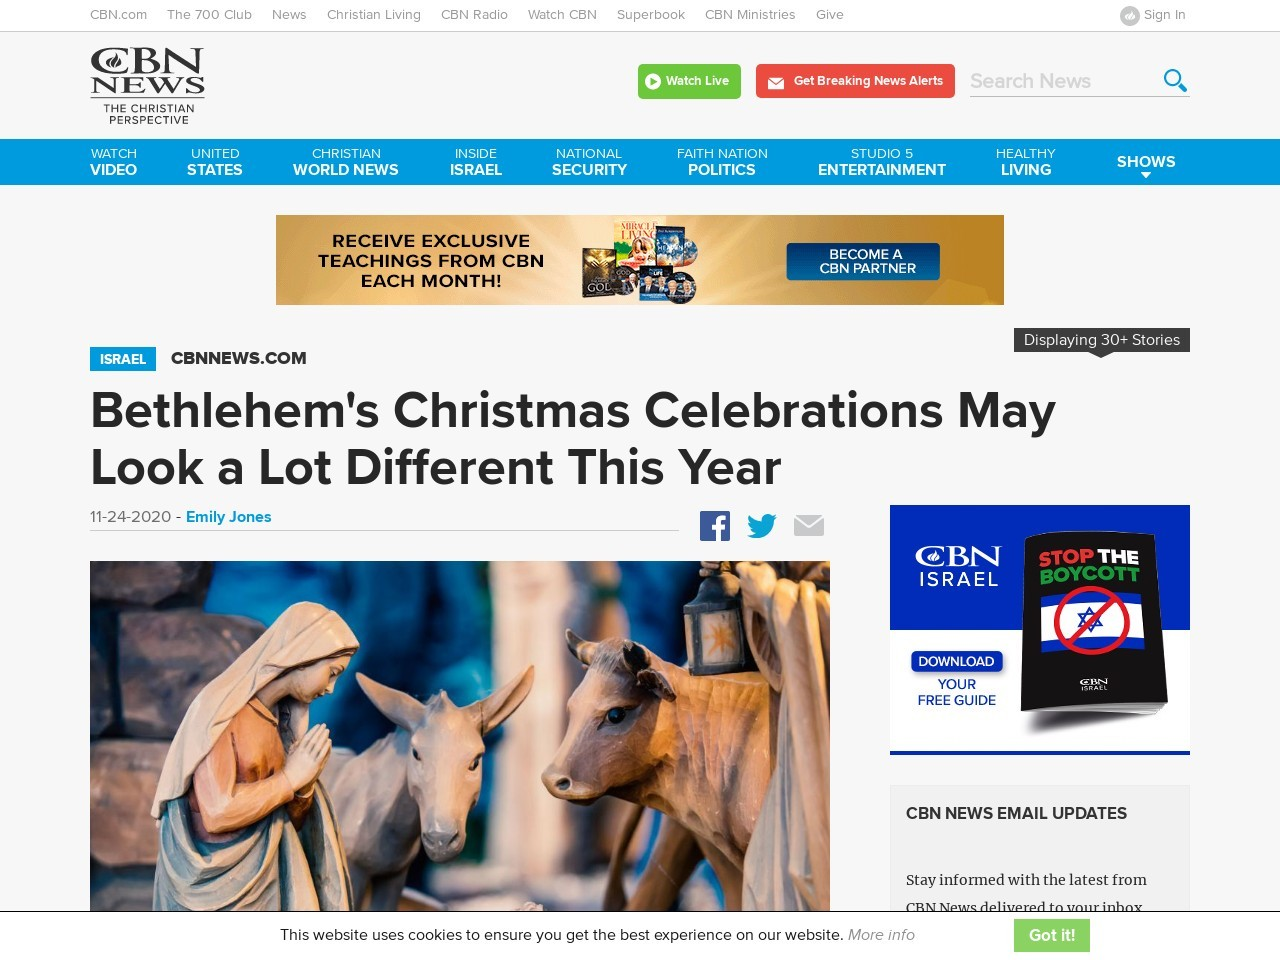 Bethlehem's Christmas Celebrations May Look a Lot Different This Year